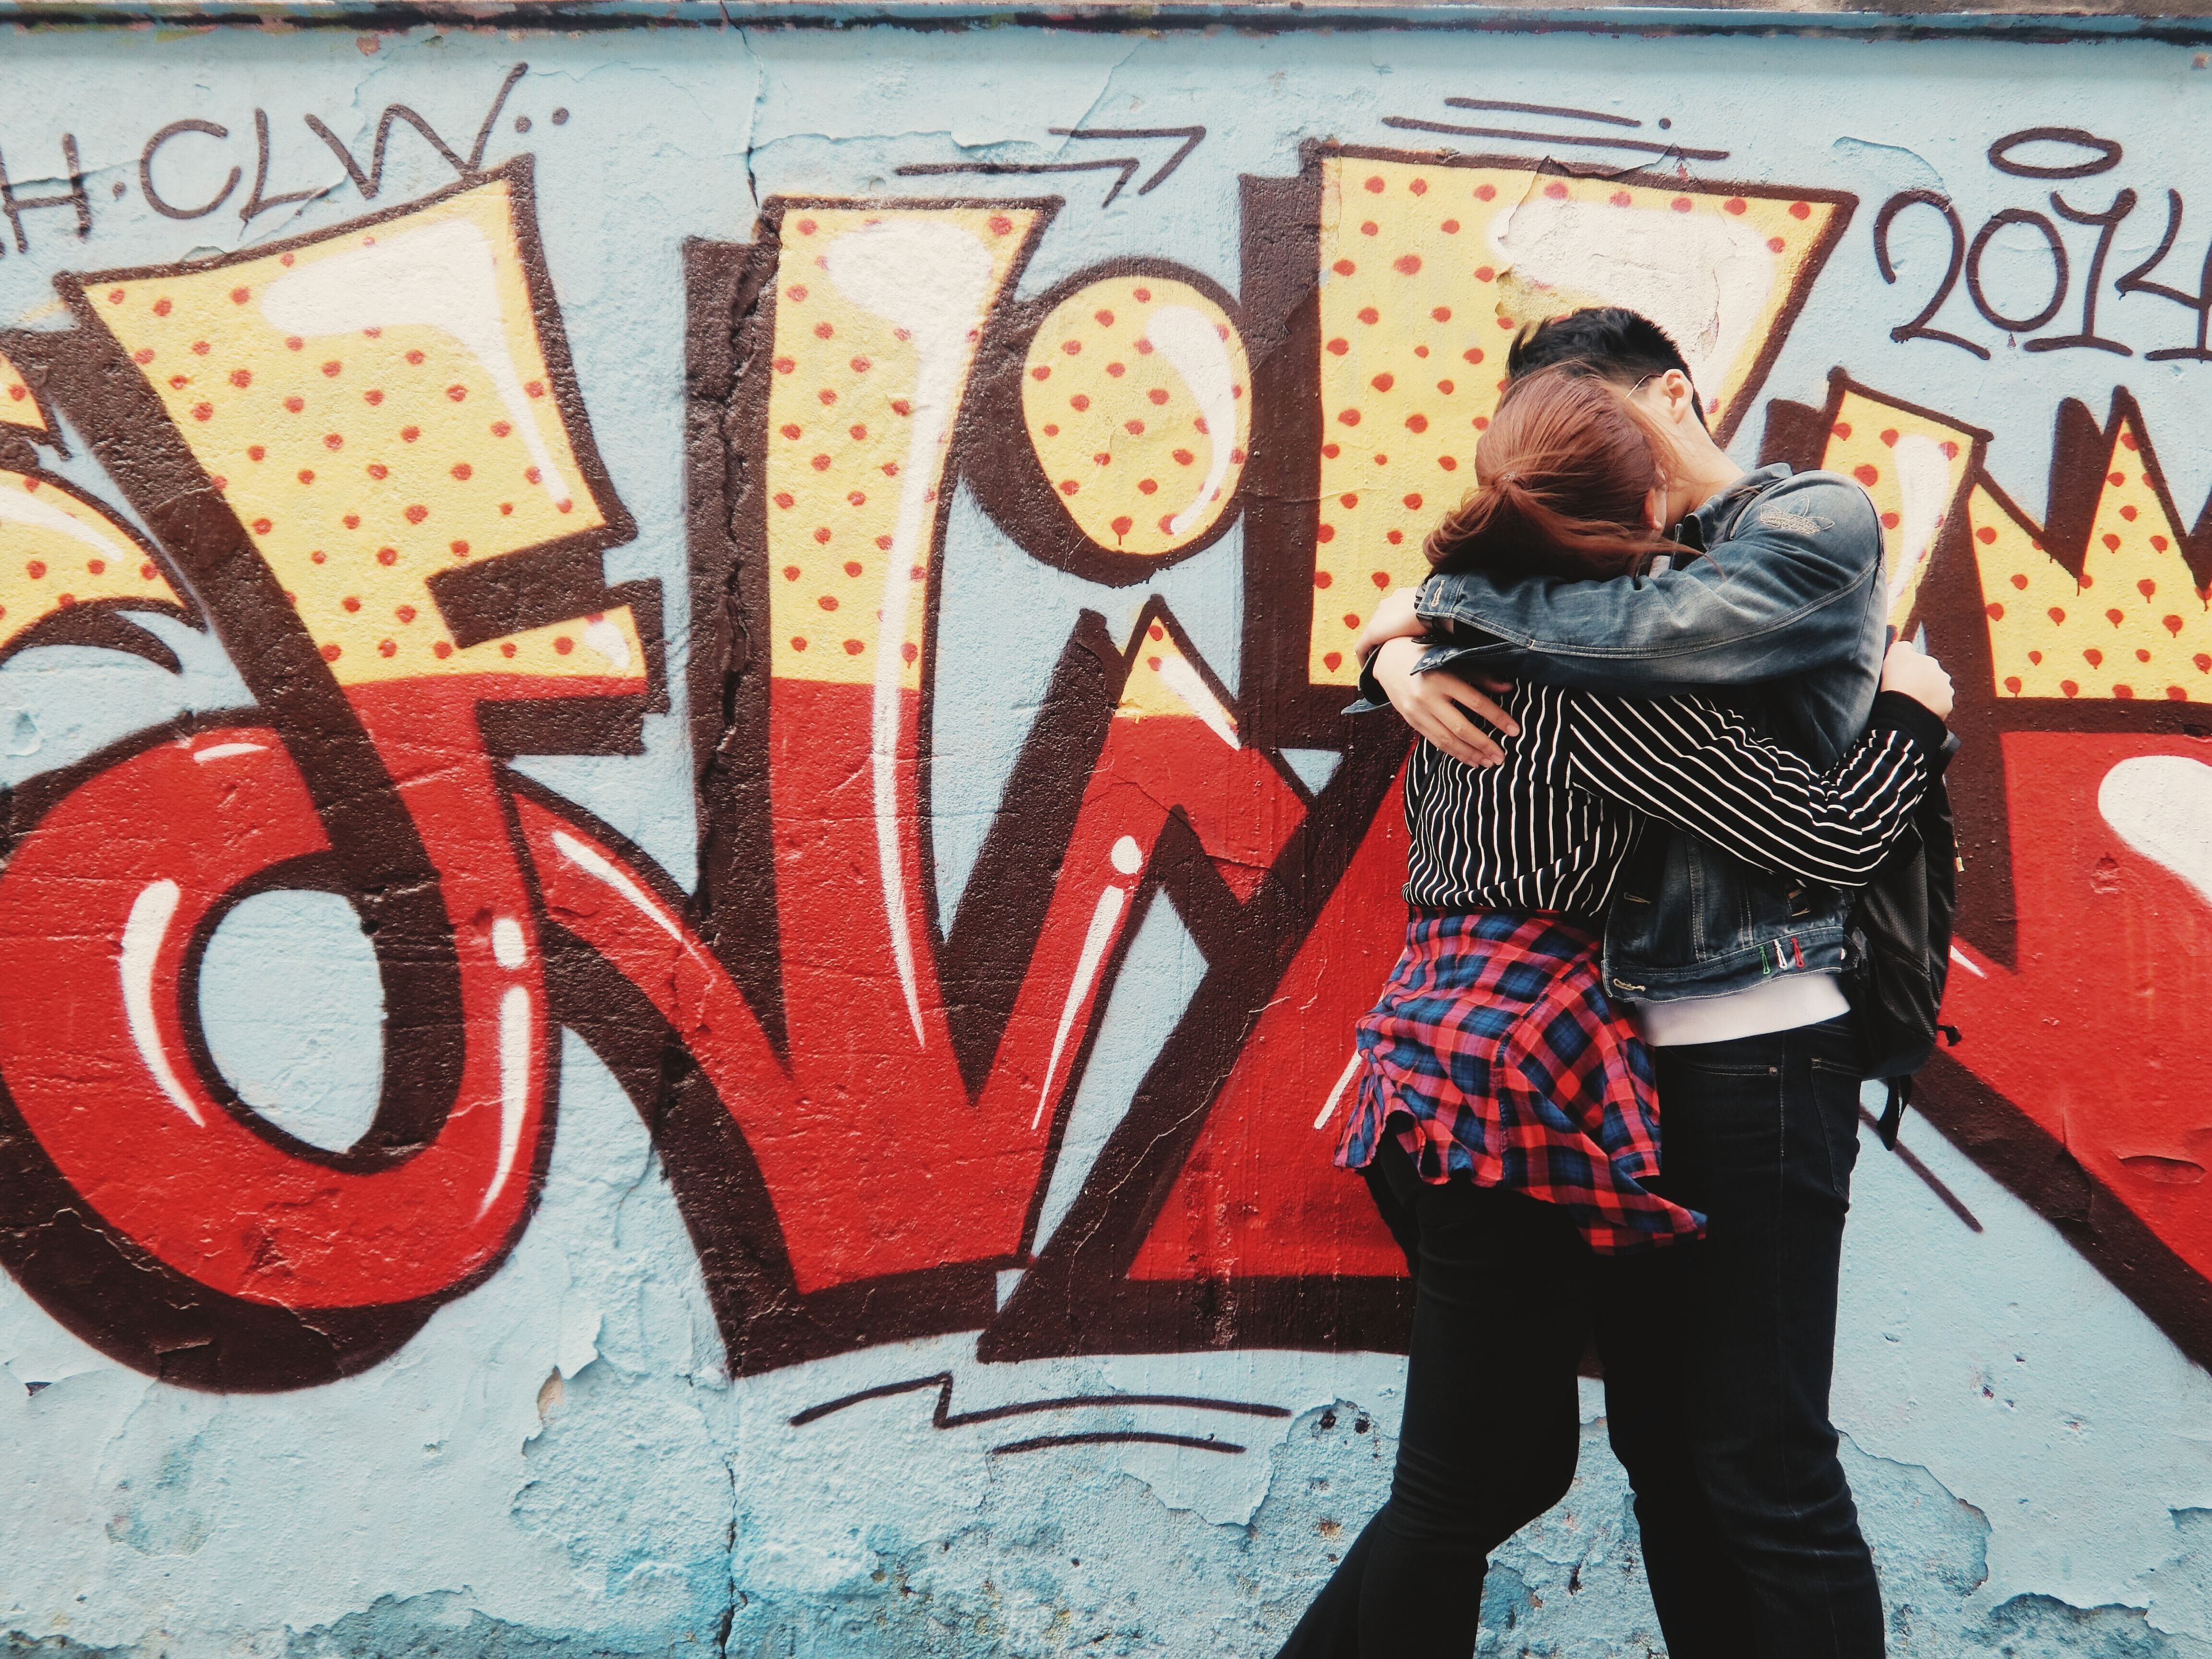 lifestyles, standing, casual clothing, leisure activity, text, communication, full length, wall - building feature, men, red, sidewalk, three quarter length, graffiti, person, rear view, street, outdoors